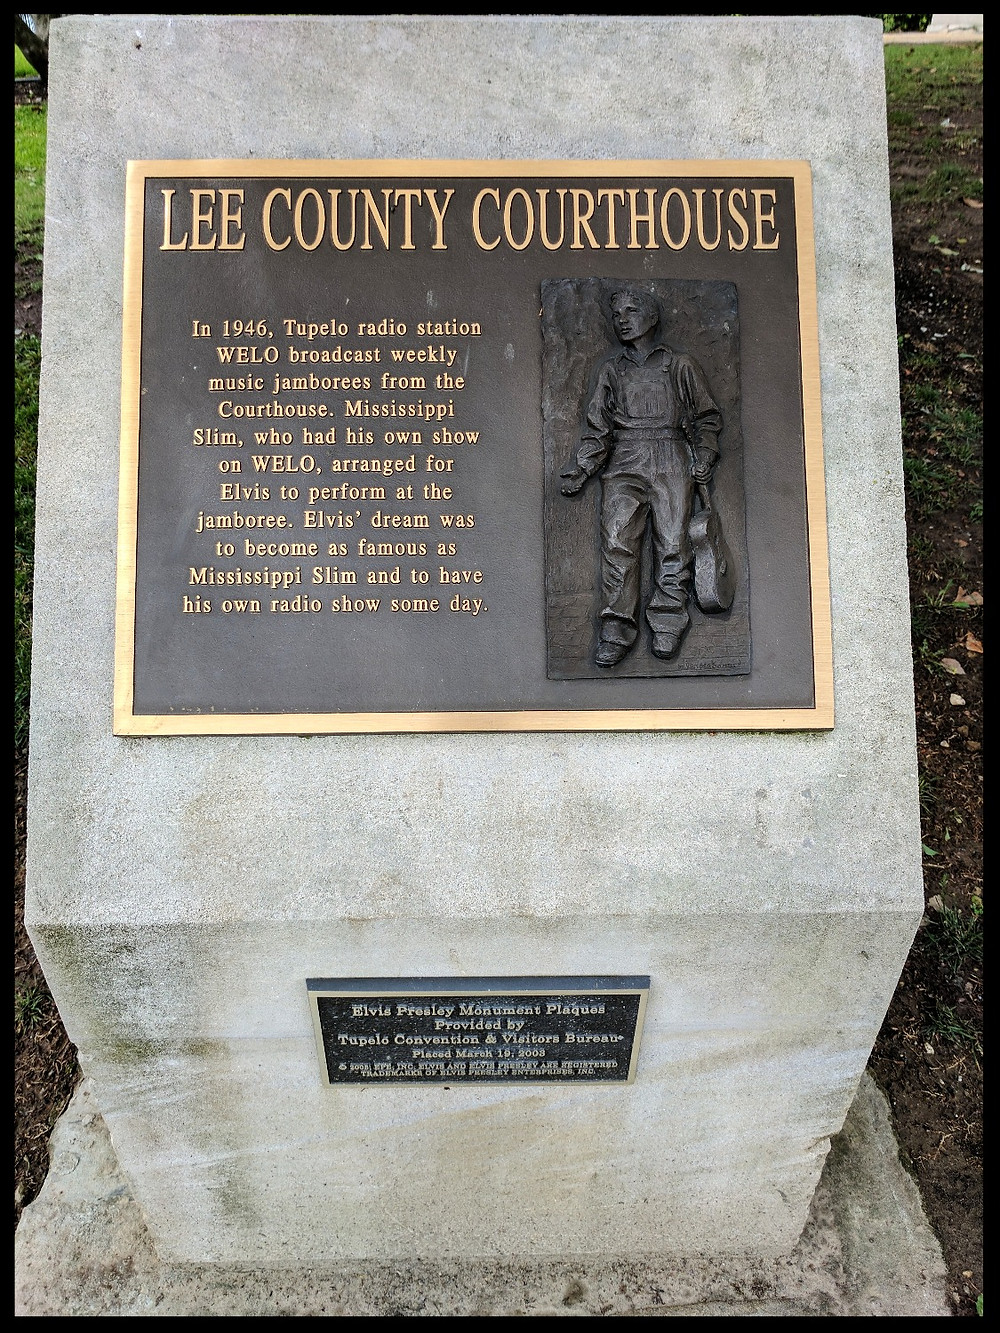 Lee County Courthouse, Tupelo, Mississippi.